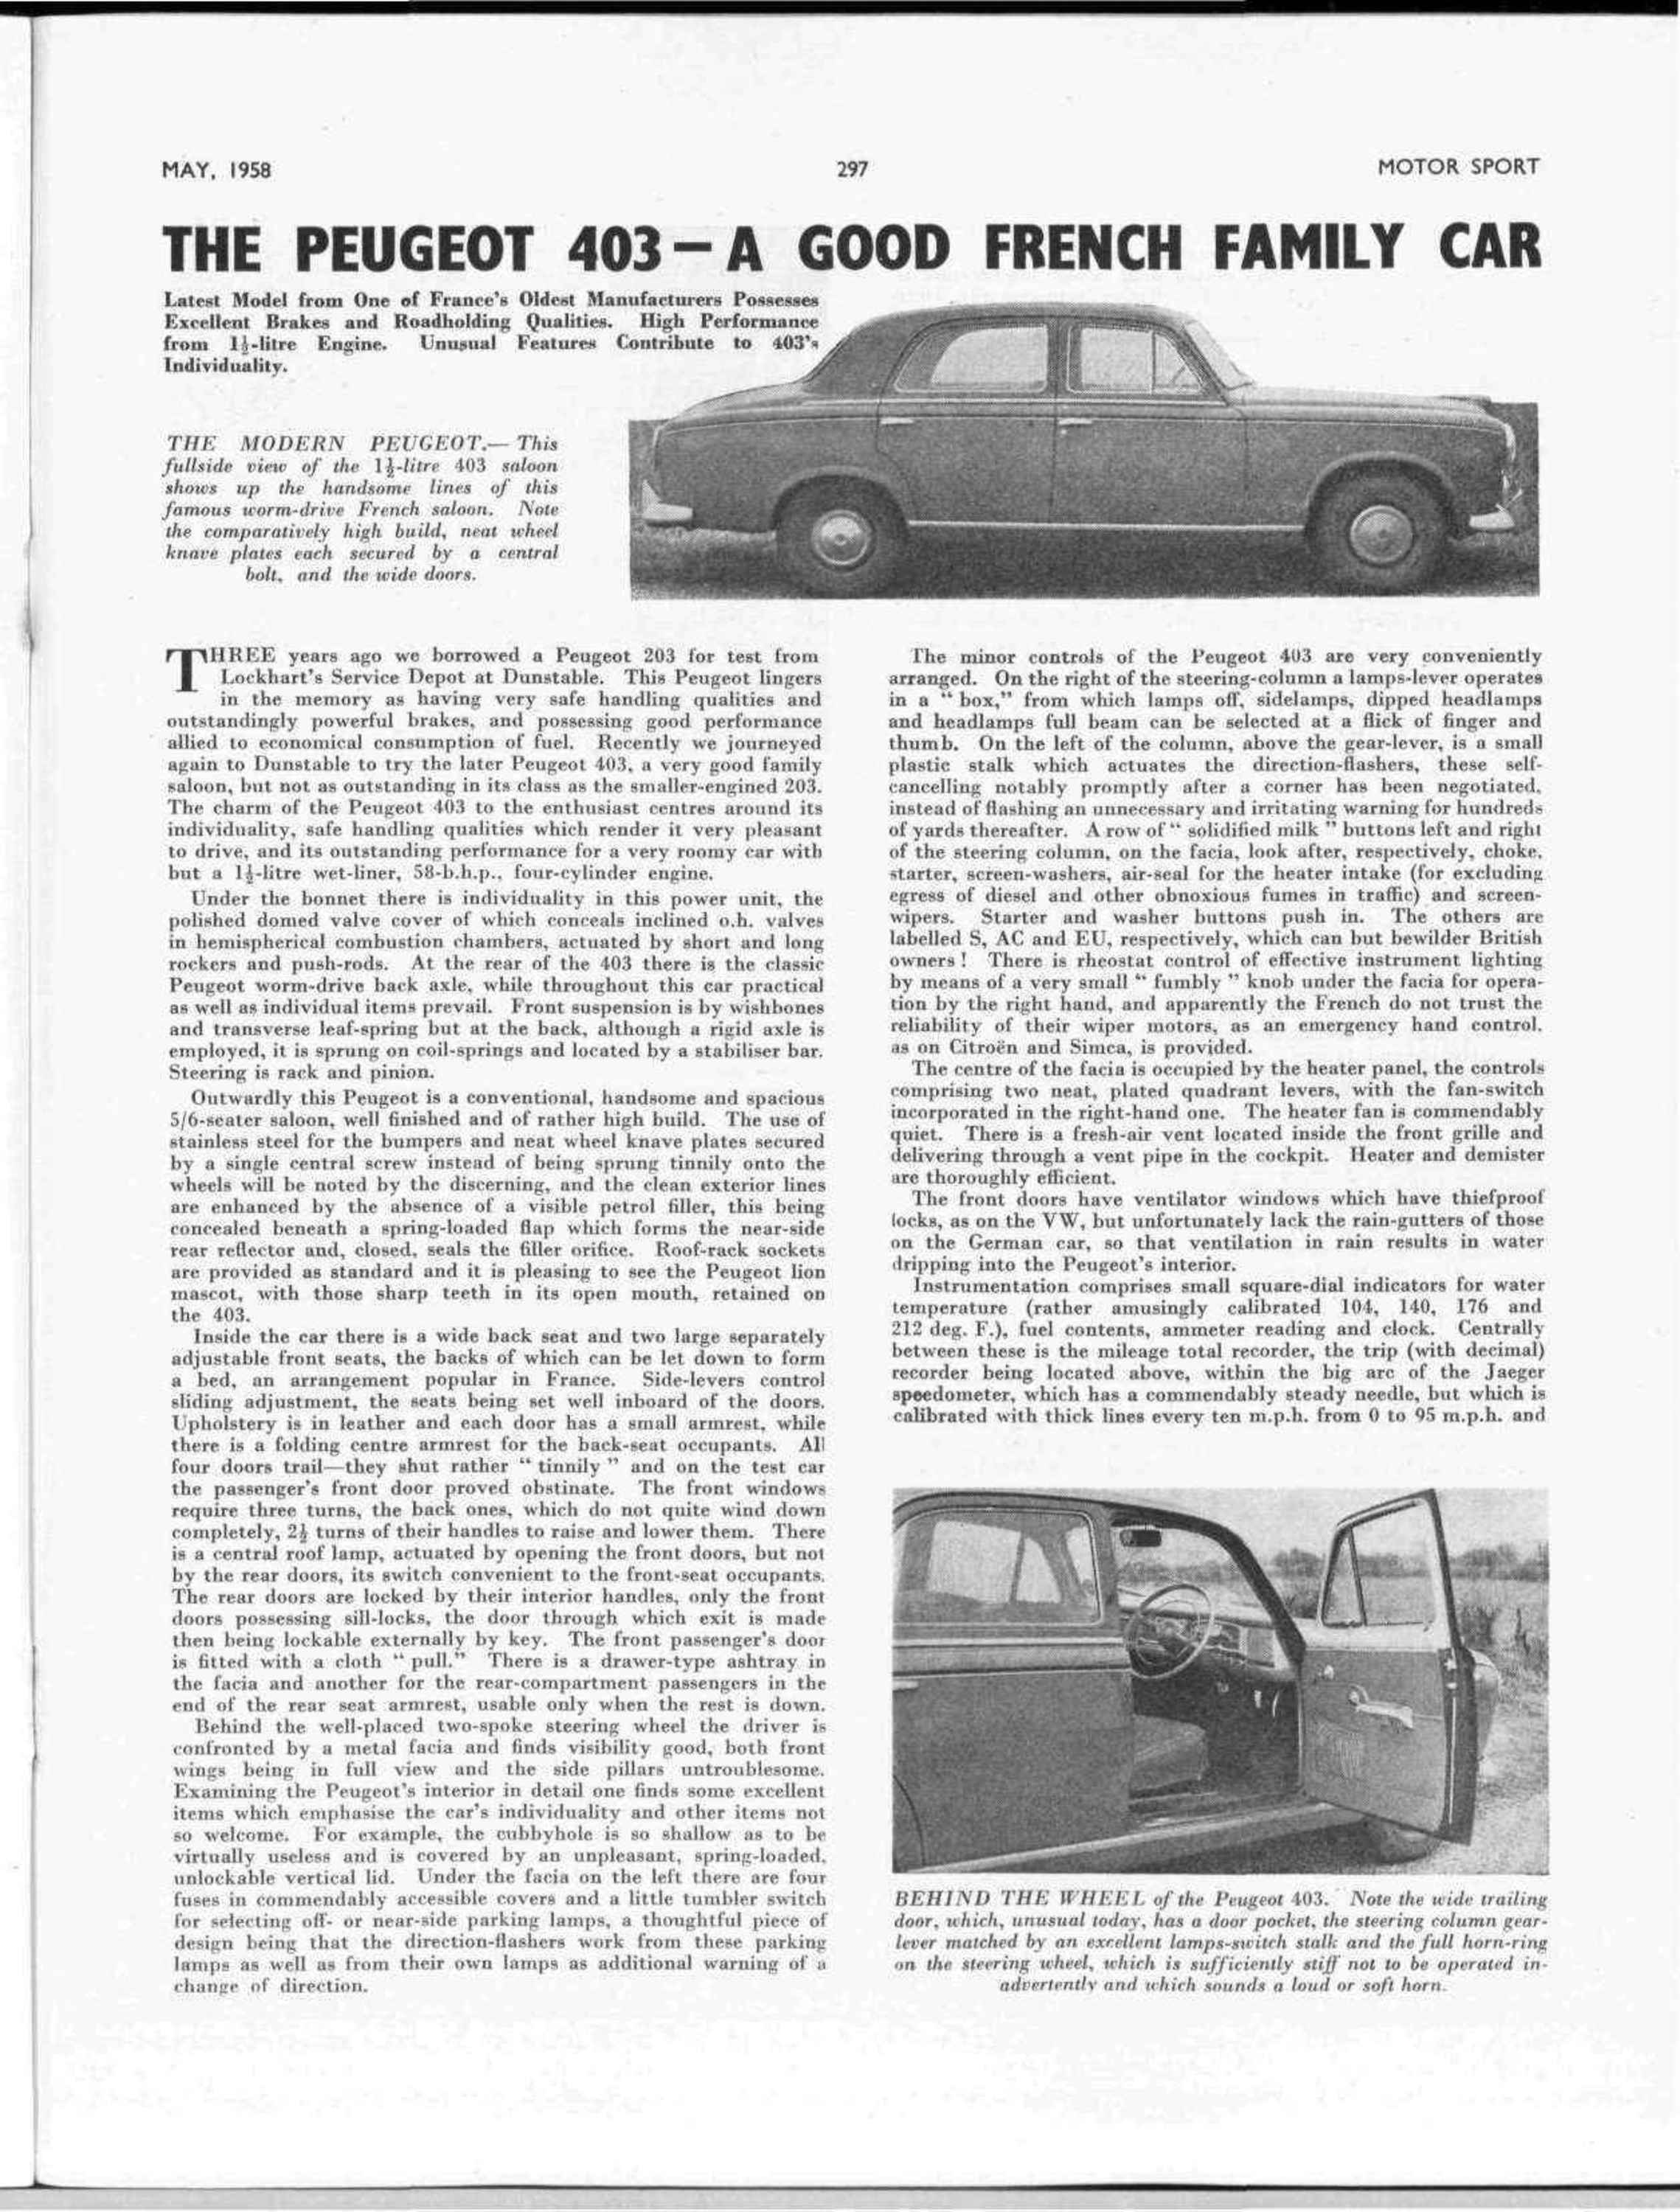 The Peugeot 403 – A good French family car